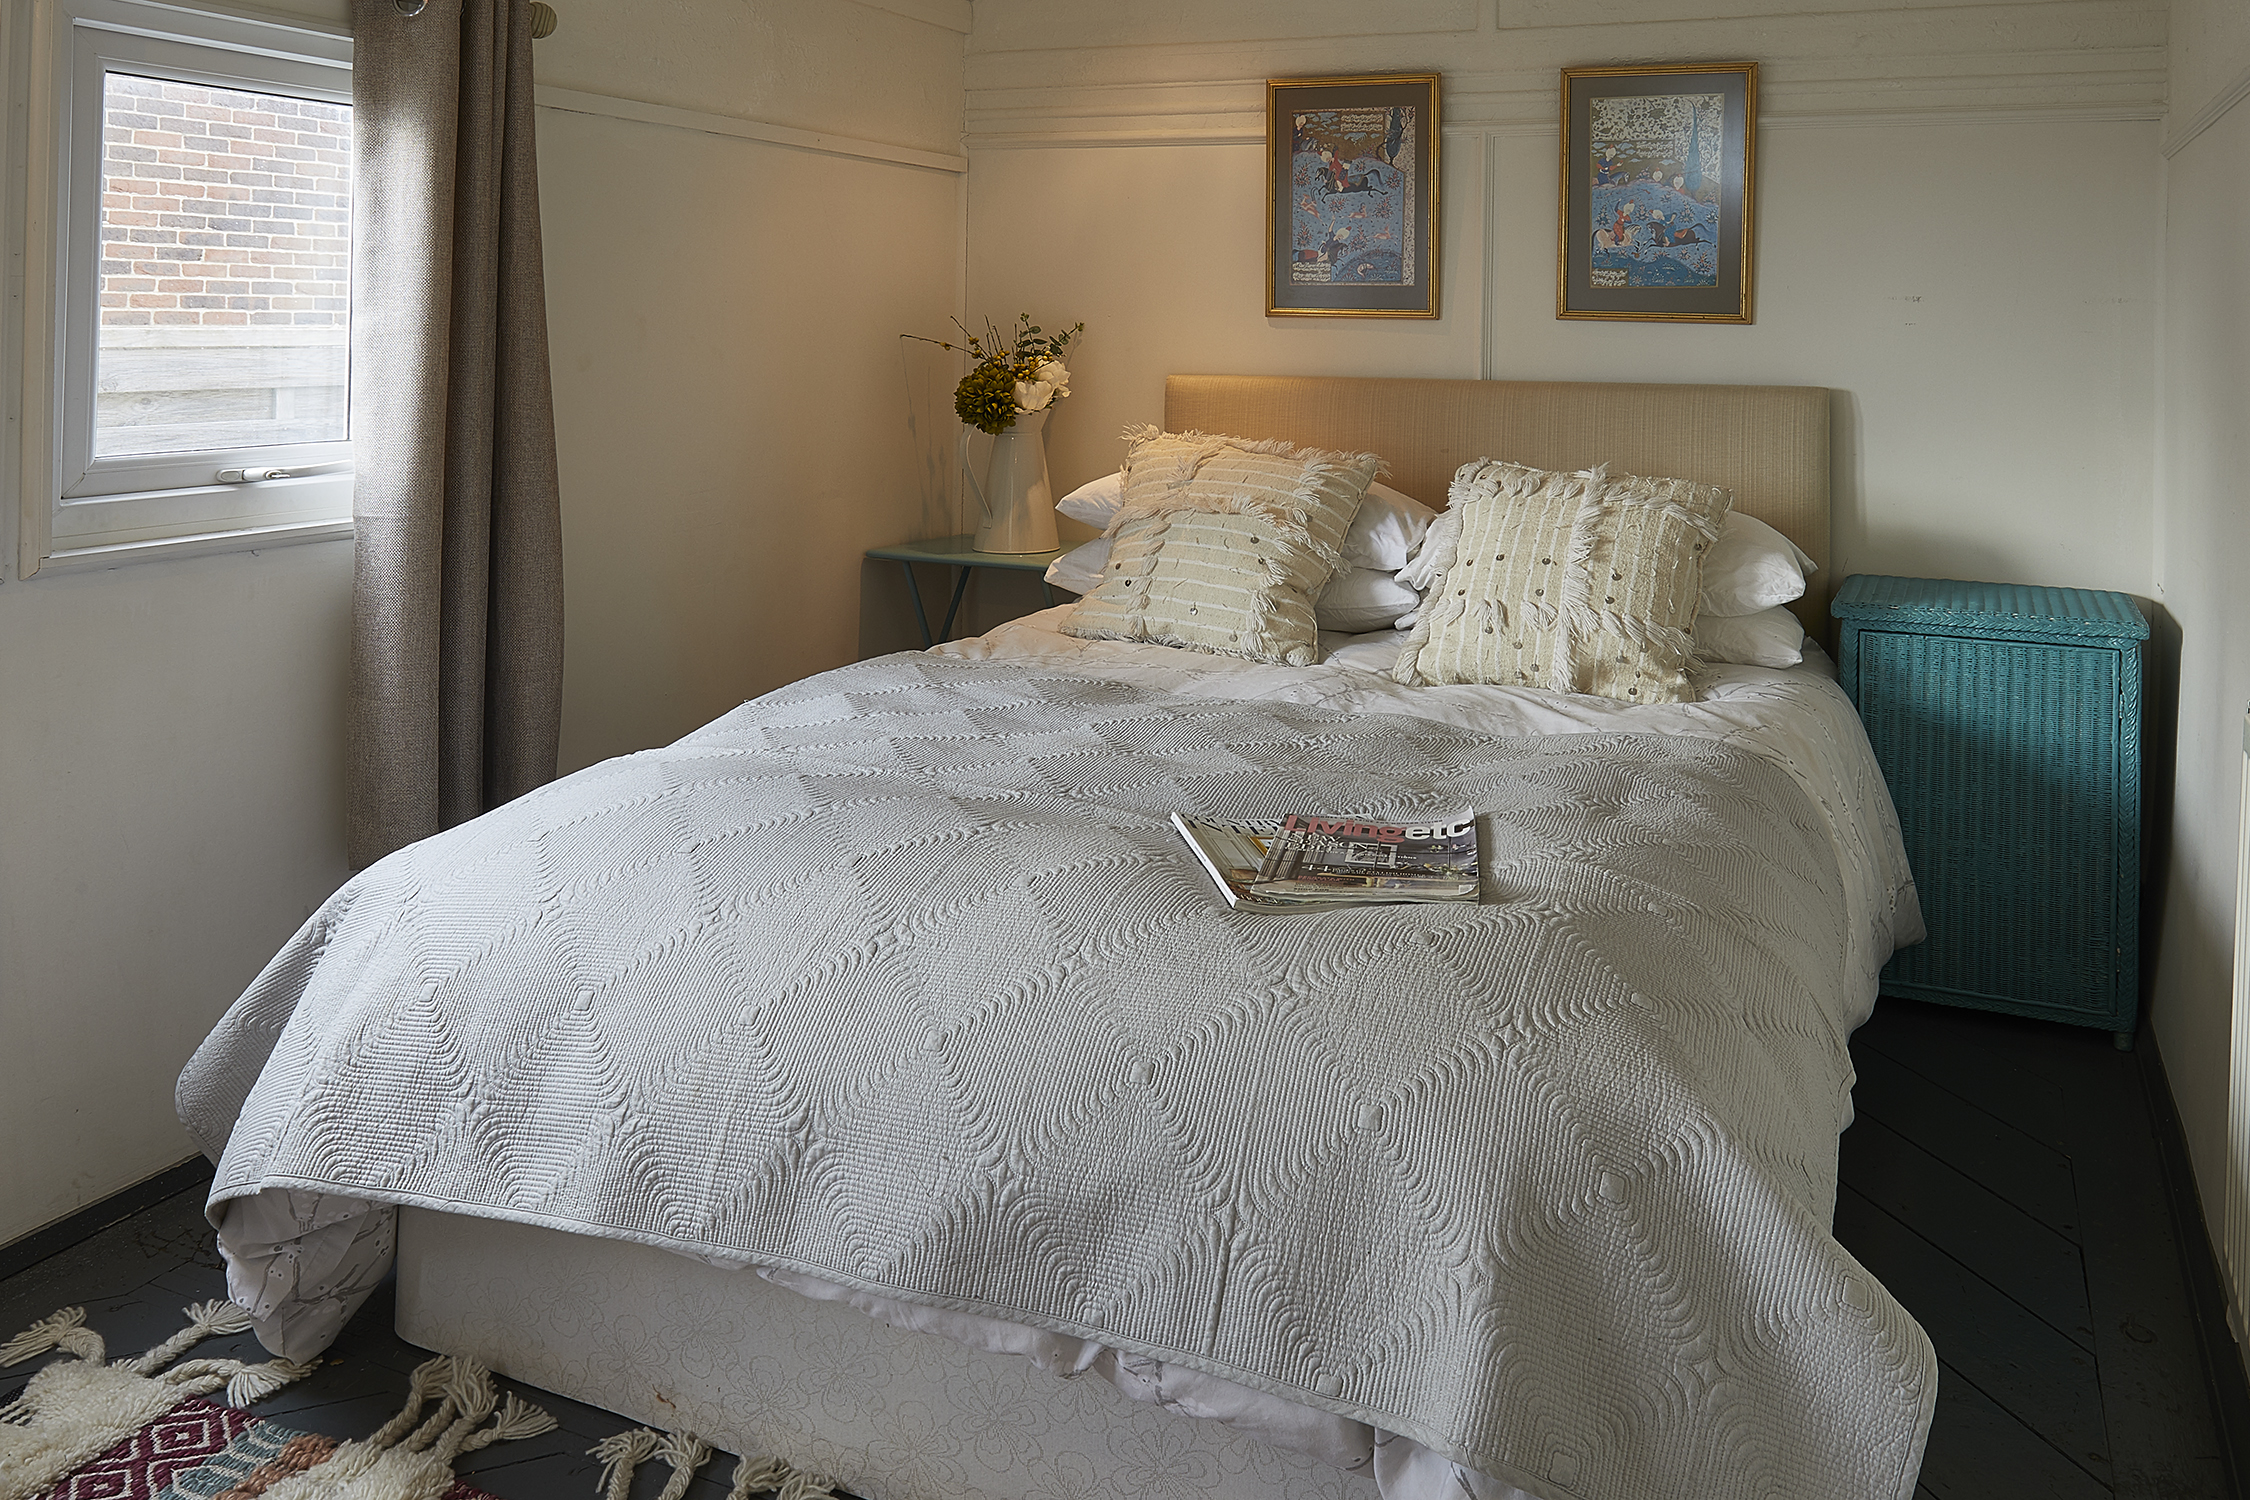 The Bolthole at Pagham Beach - Bedroom 3